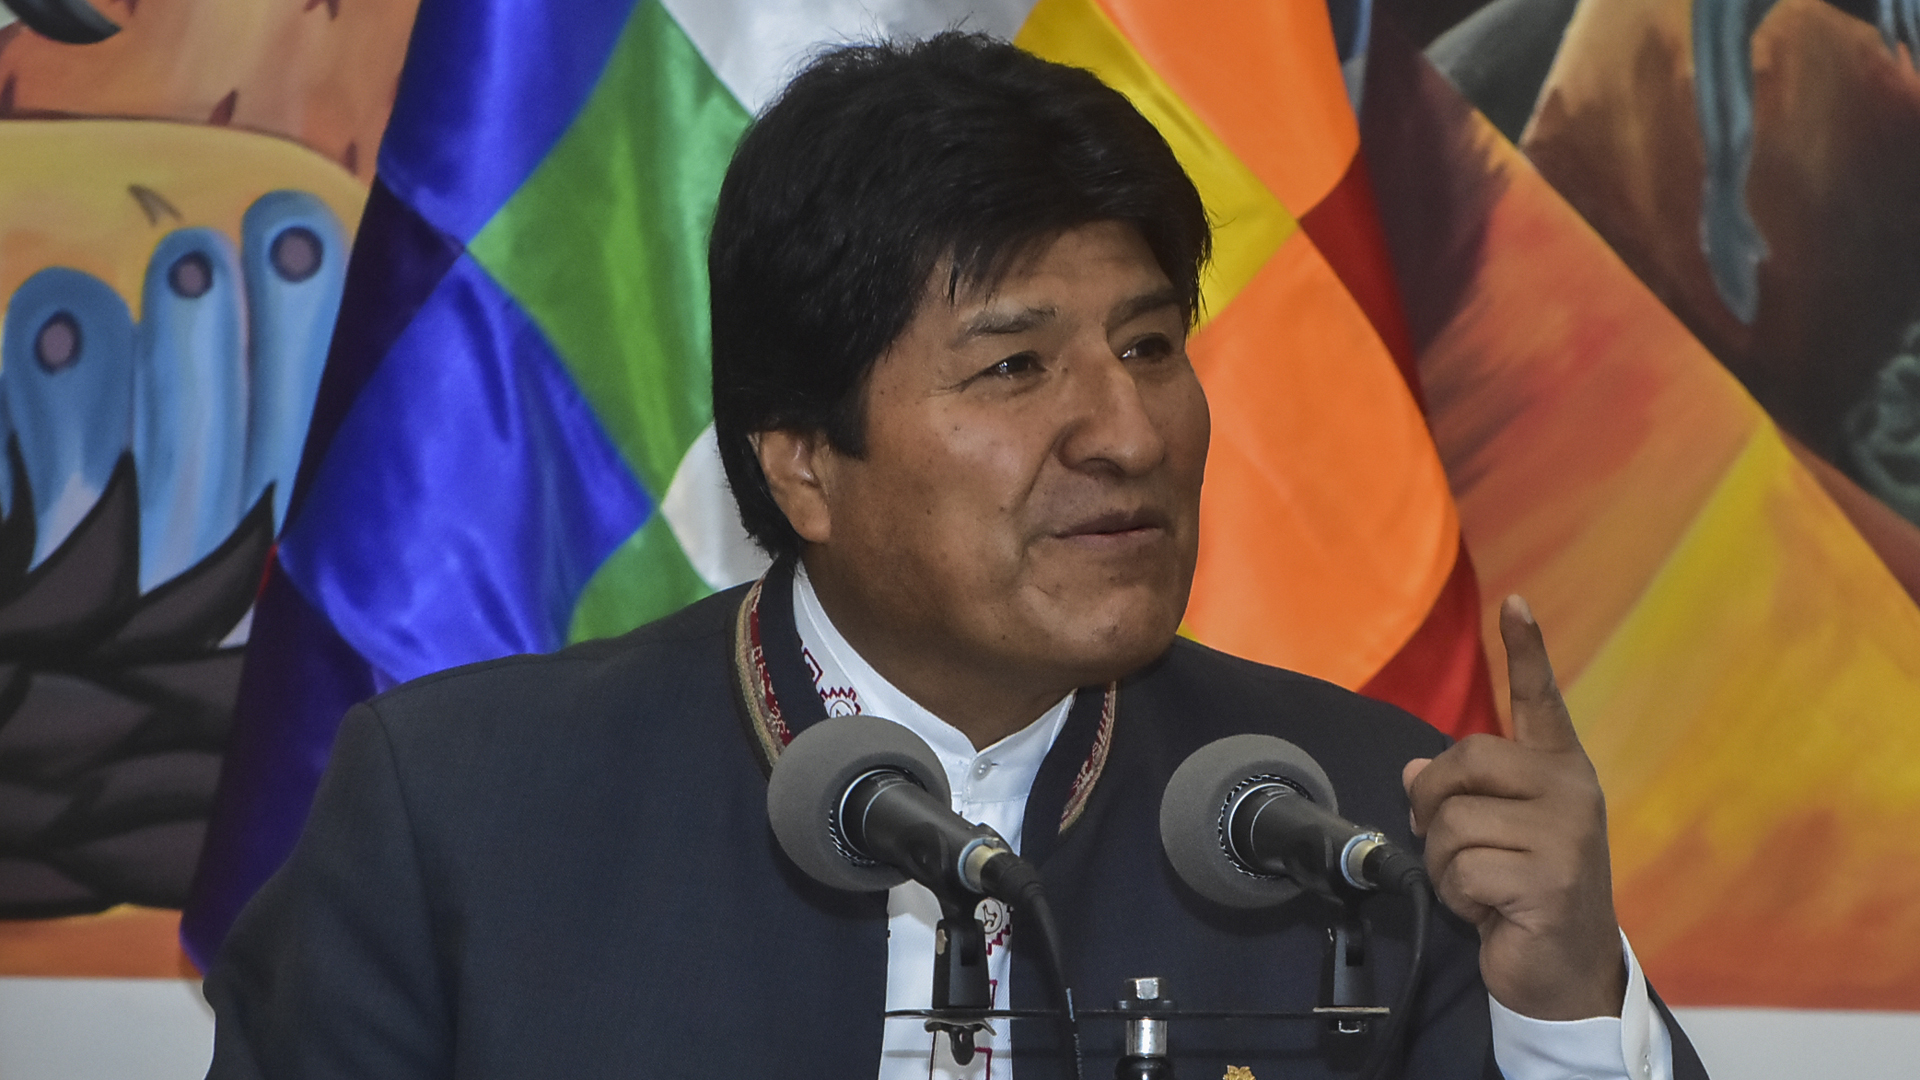 President of Bolivia Evo Morales speaks during a press conference on October 24, 2019 in La Paz, Bolivia. (Credit Javier Mamani/Getty Images)